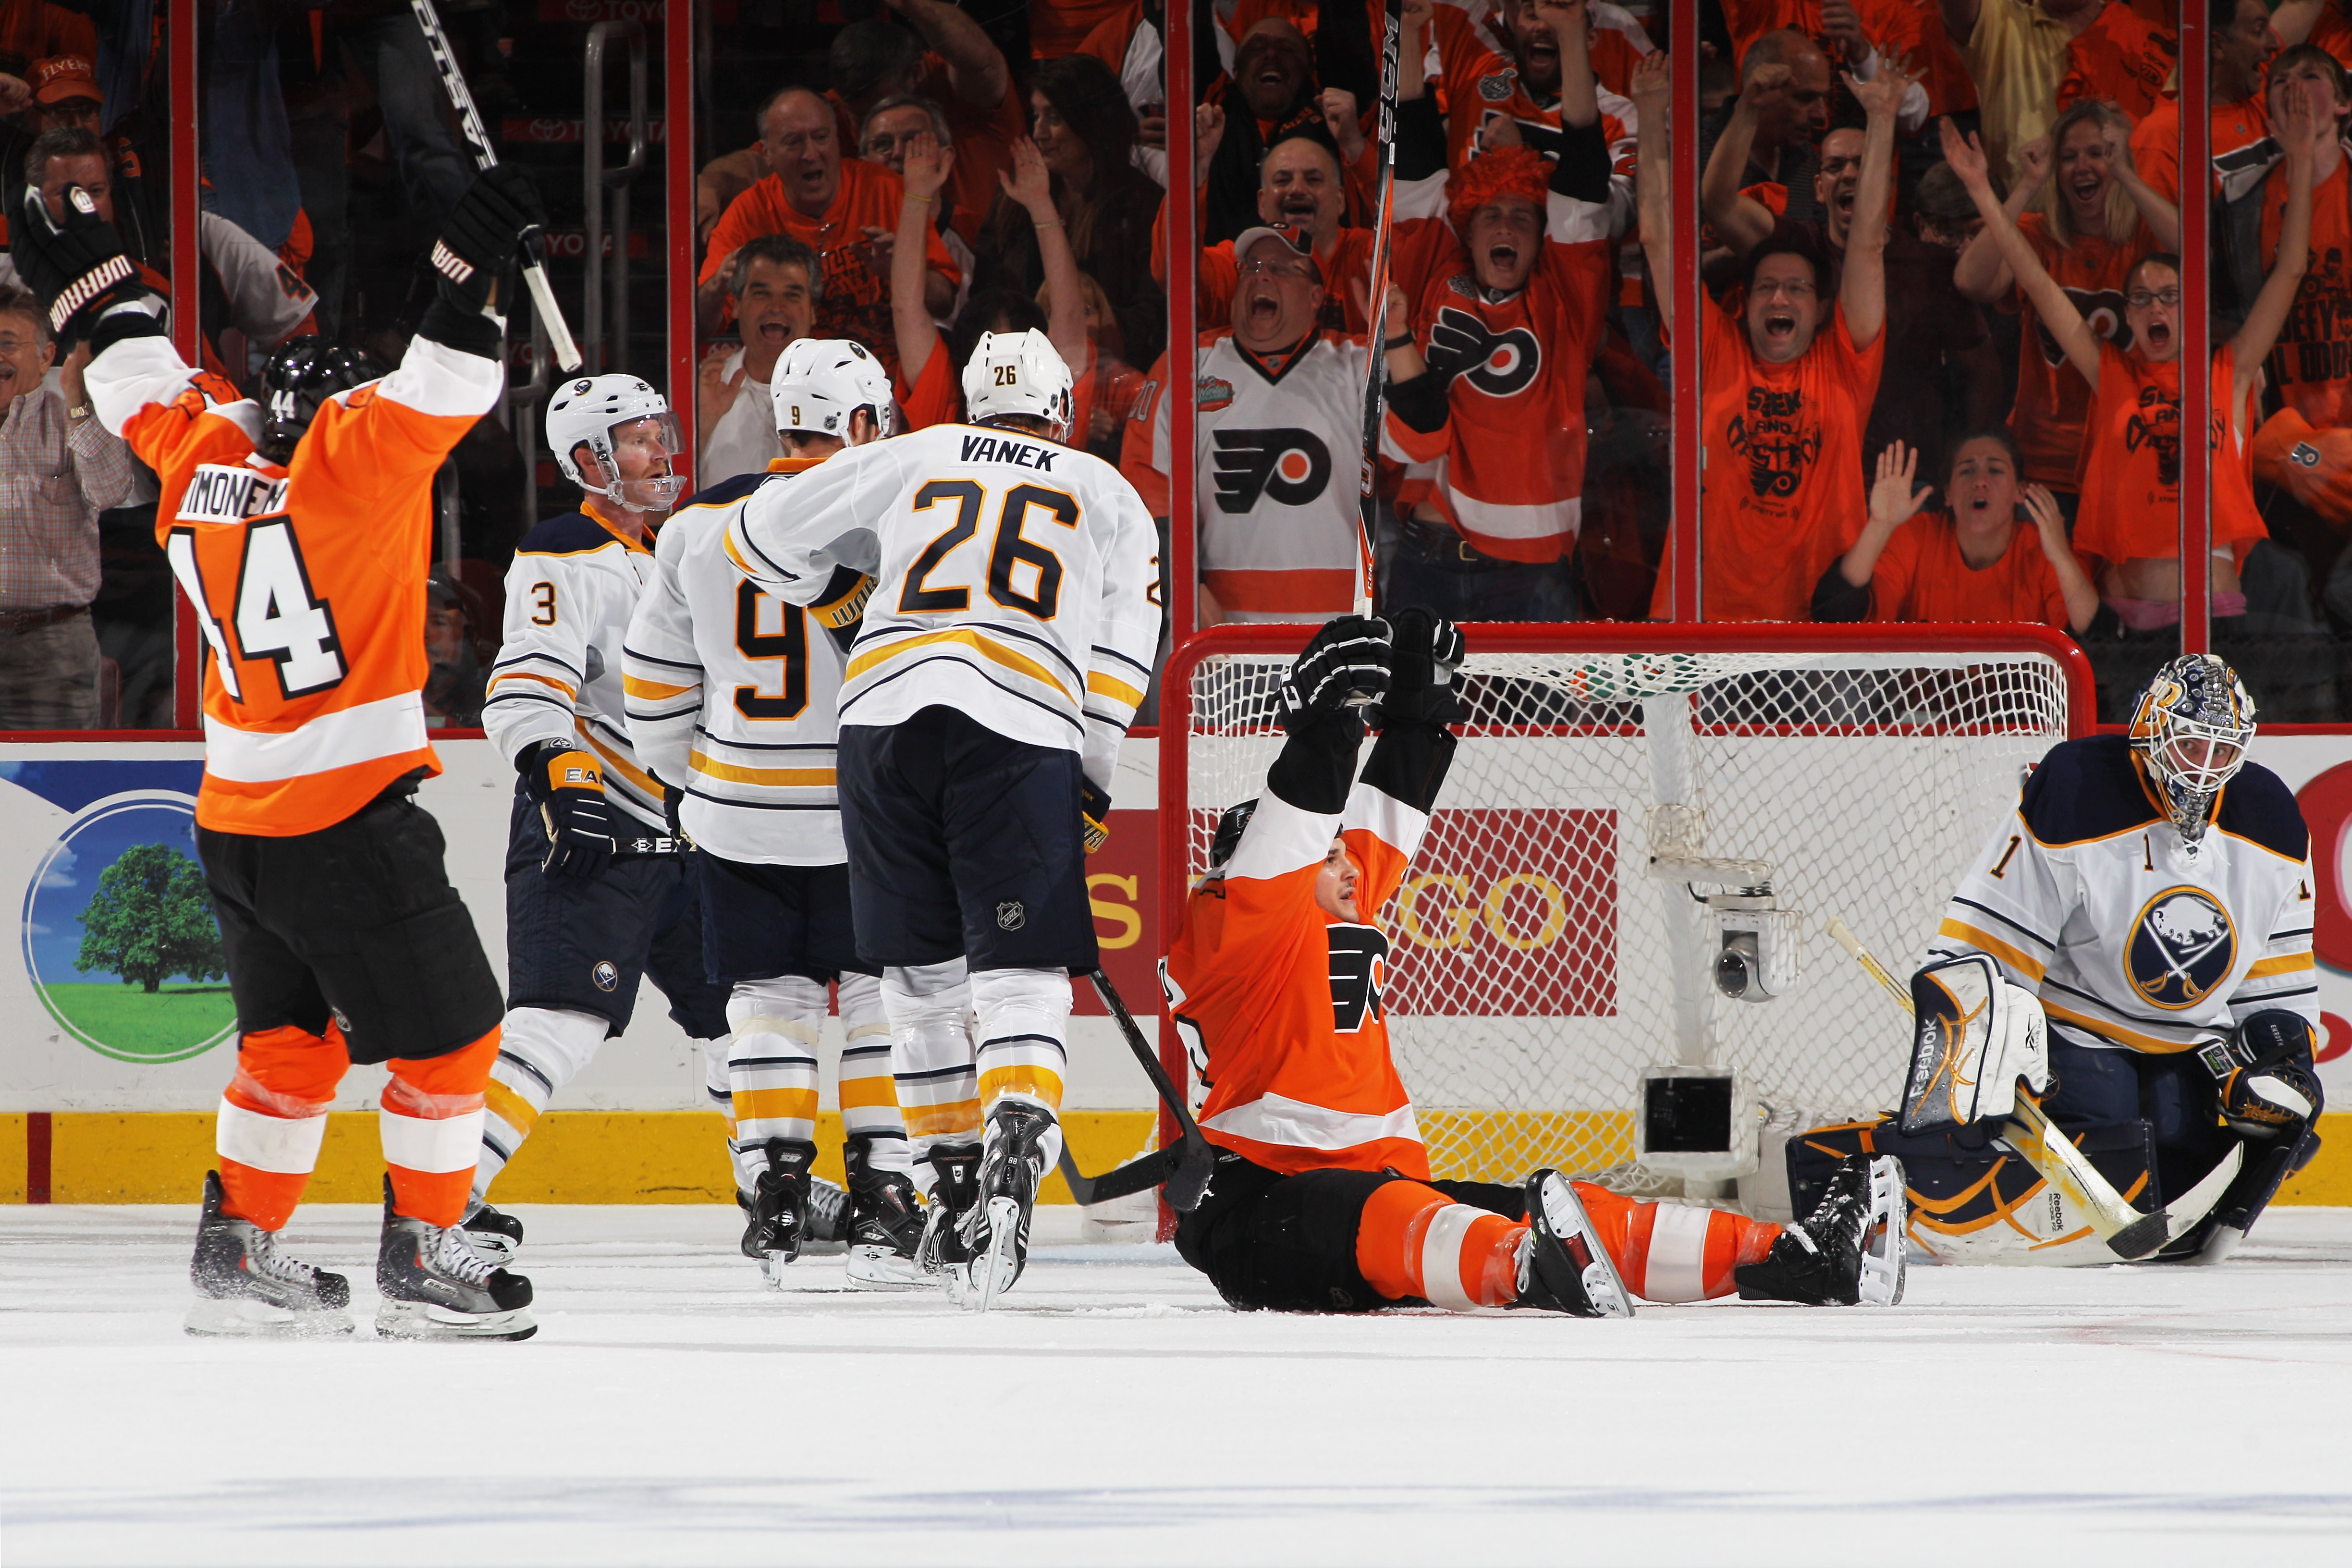 PHILADELPHIA, PA - APRIL 26:  Daniel Carcillo #13 of the Philadelphia Flyers celebrates scoring a third period goal against Jhonas Enroth #1 of the Buffalo Sabres with teammates in Game Seven of the Eastern Conference Quarterfinals during the 2011 NHL Sta